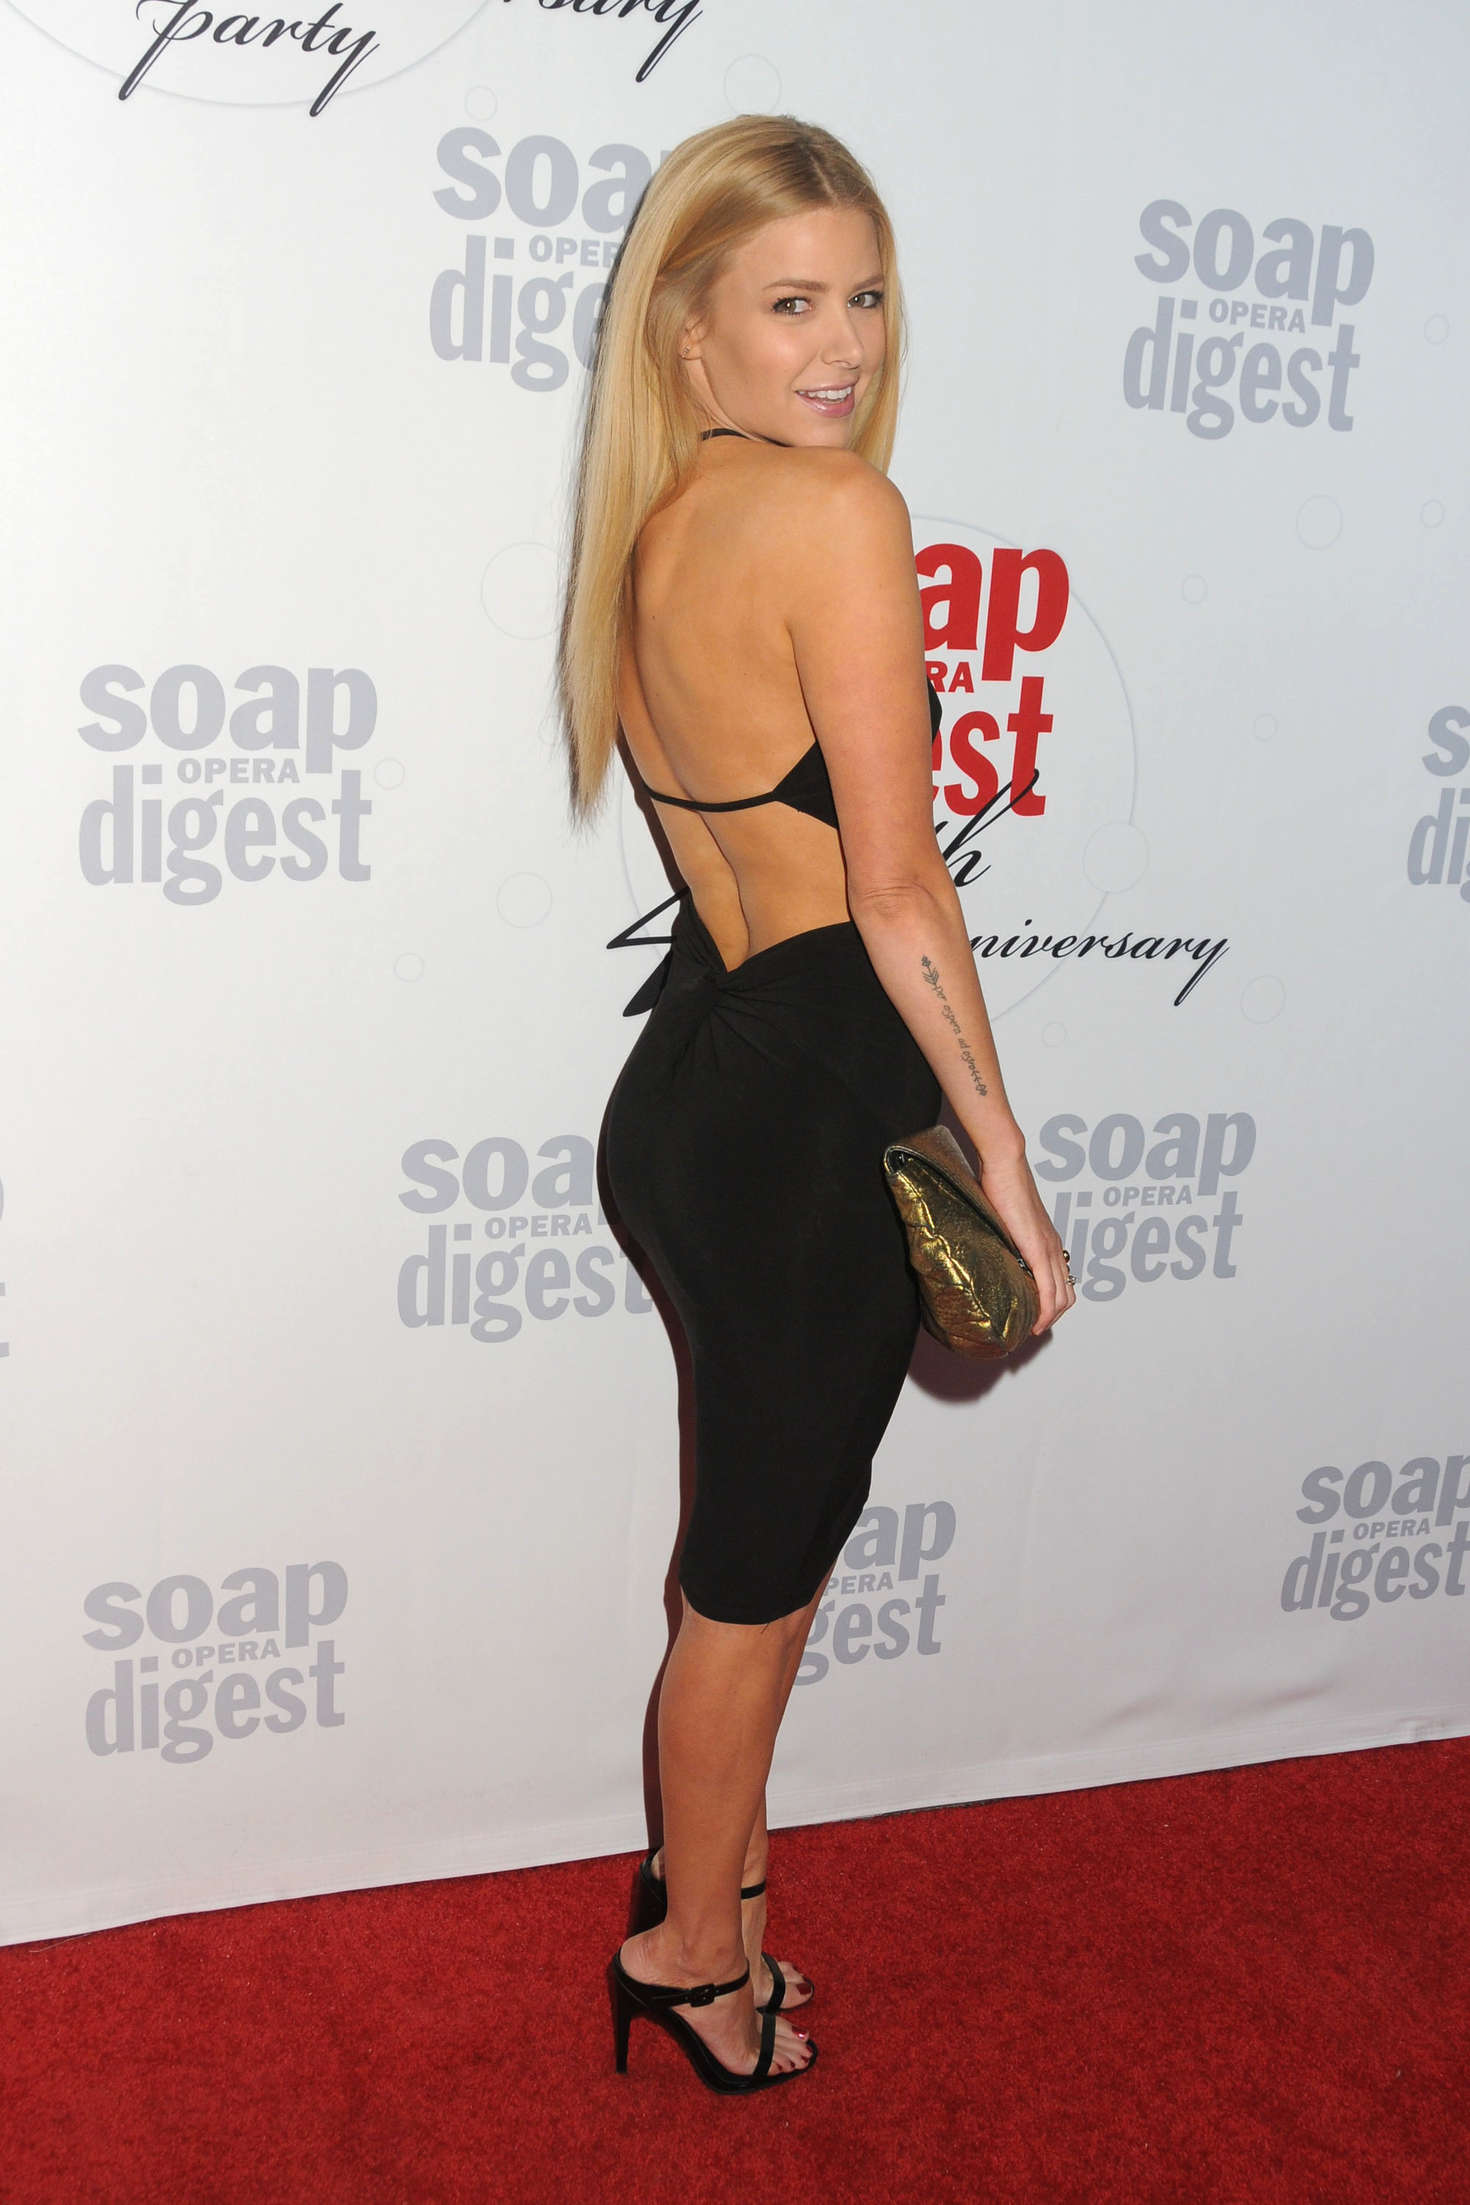 Ariana Madix The Soap Opera Digests Anniversary Event in Hollywood